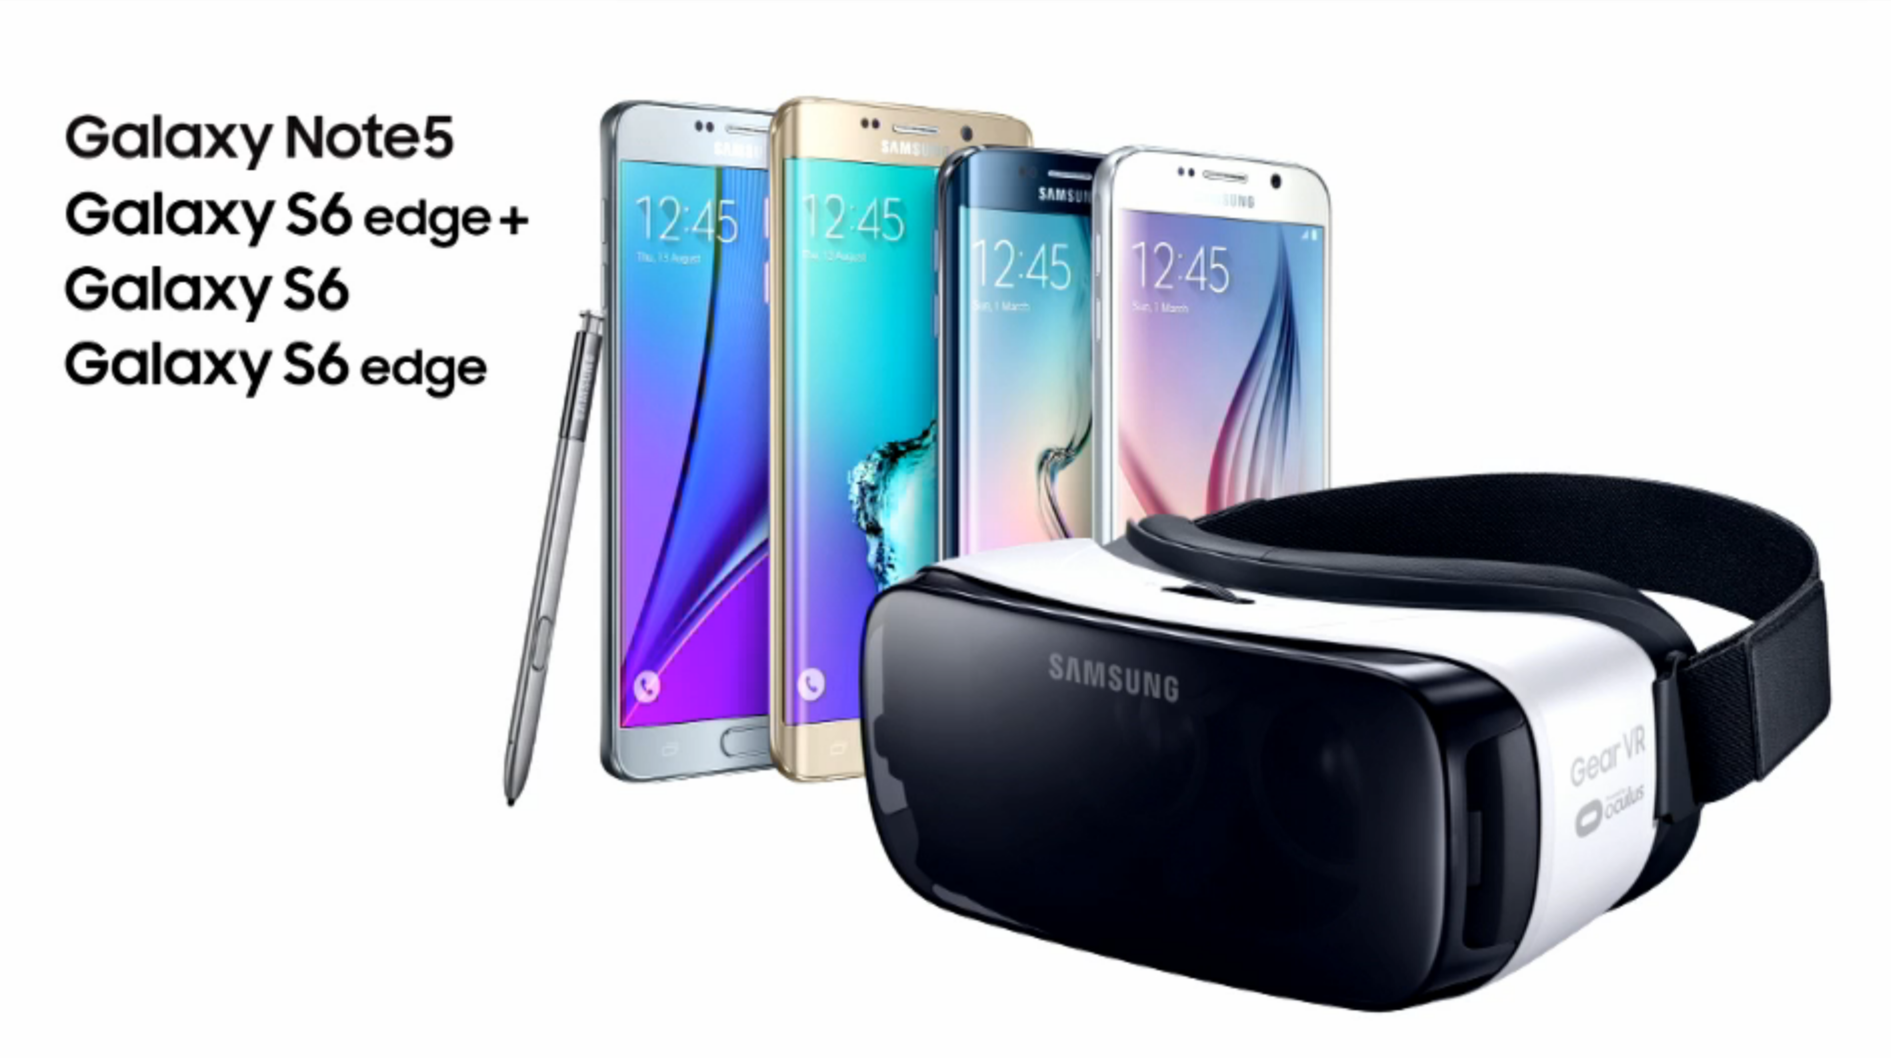 Samsung Gear VR Review Is It Worth It in 2018? Samsung